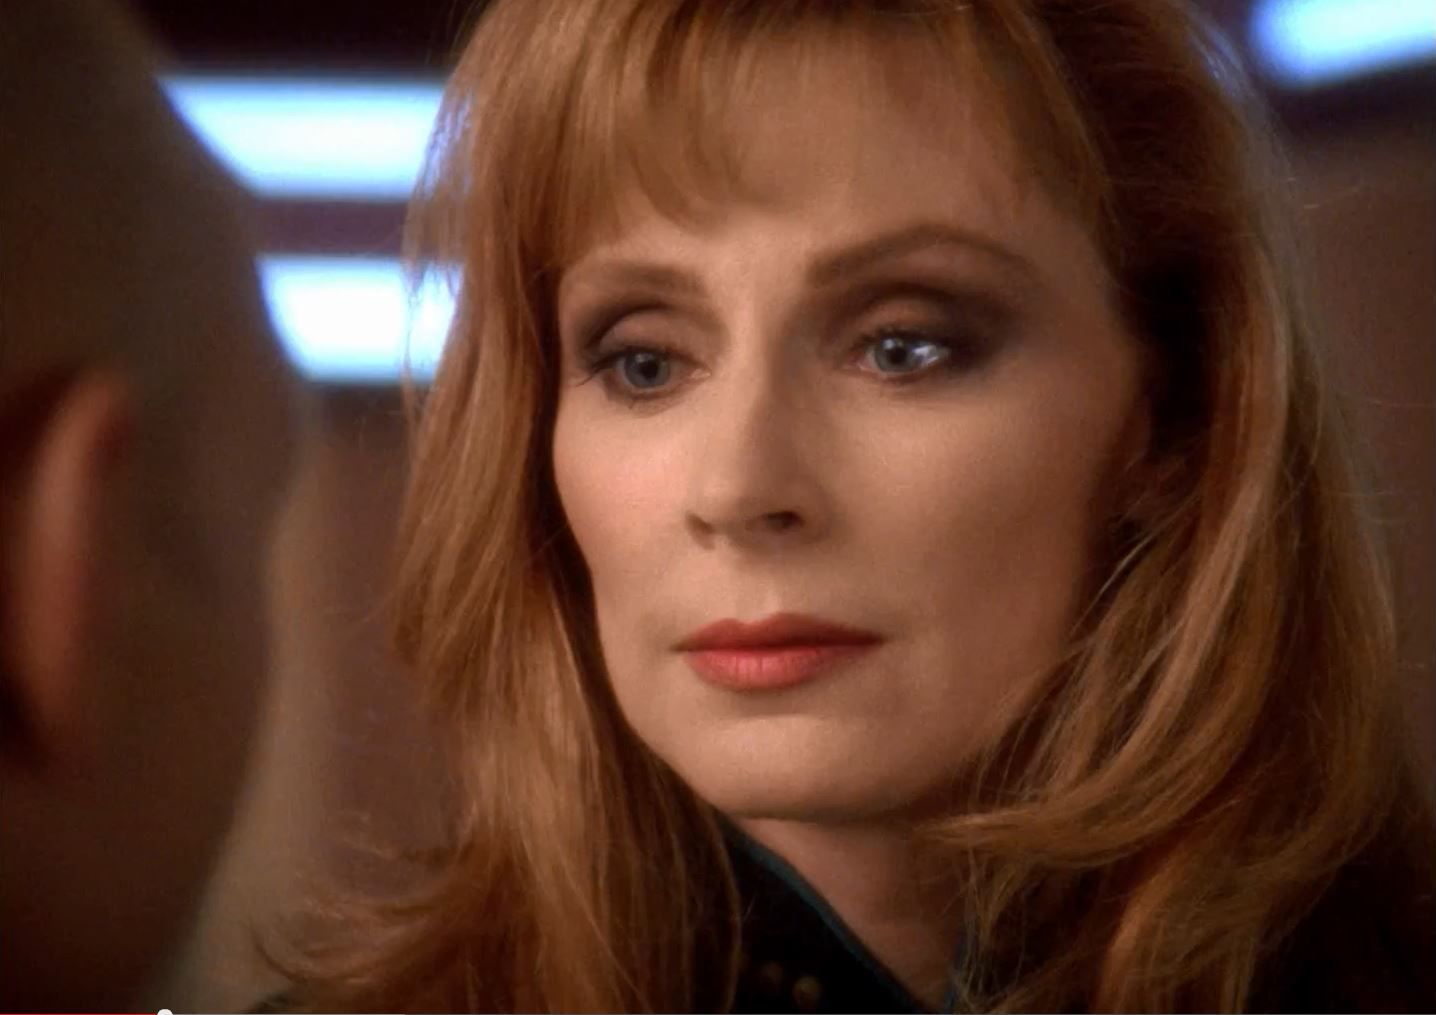 Star Trek TNG Season 7 Blu-Ray Trailer - Gates McFadden as Doctor Crusher